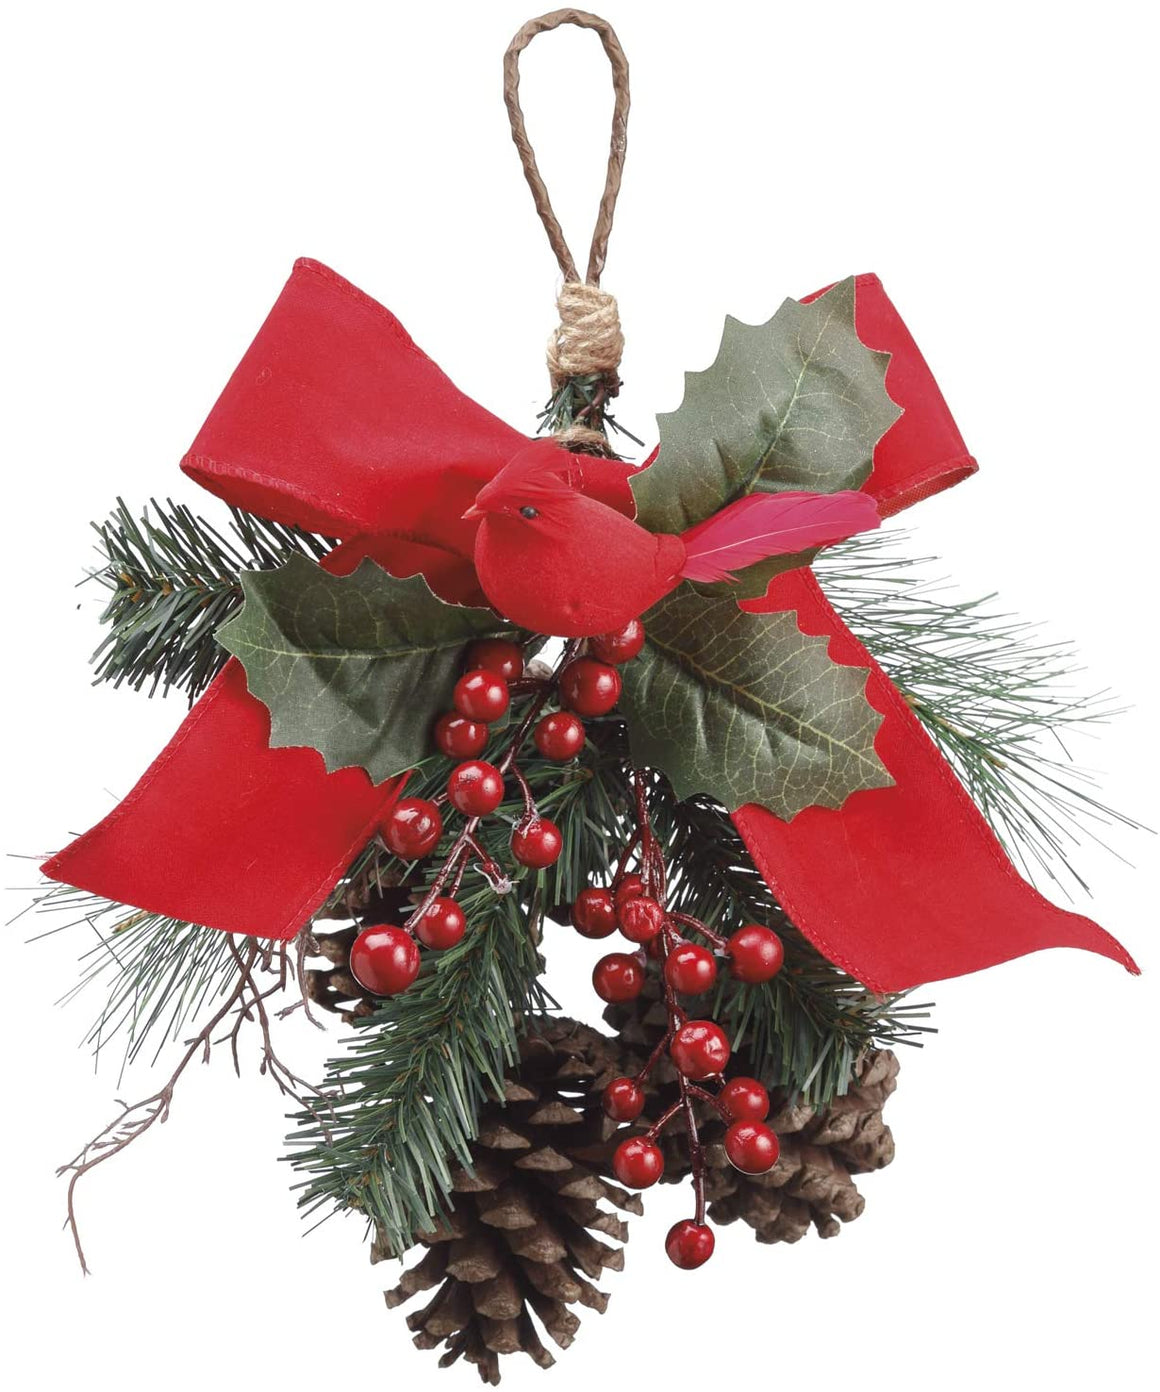 TenWaterloo 16 Inch Pine Cone and Cardinal Christmas Door Hanger with Red Bow, Artificial Pine